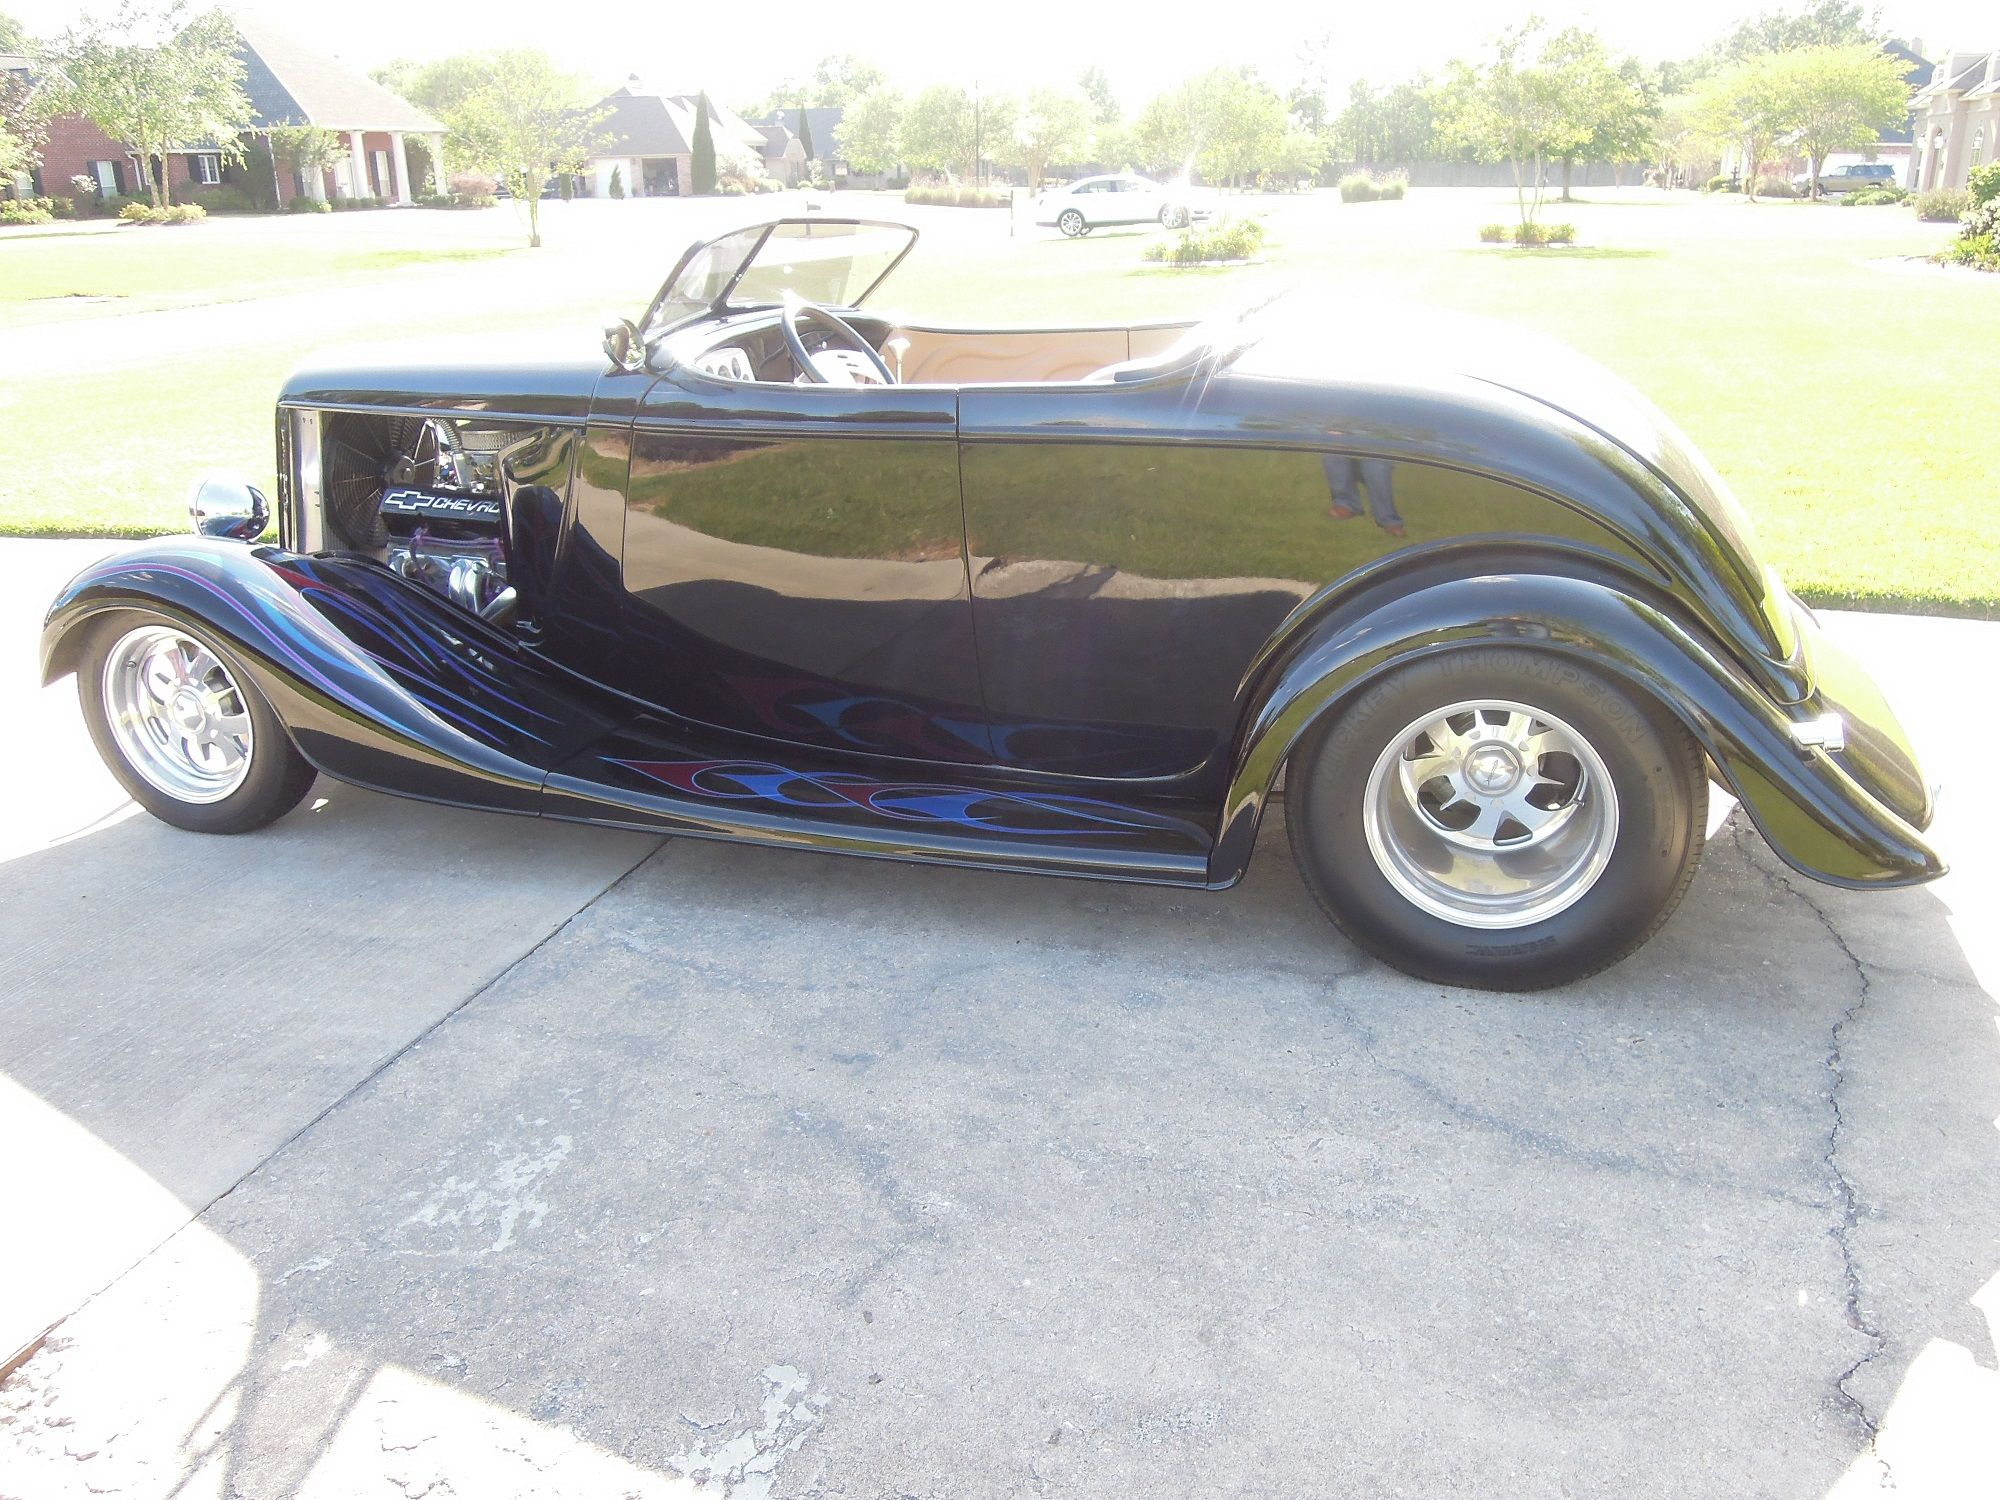 1933 Ford Roadster for sale at StreetRodding.com Sell My Classic ...